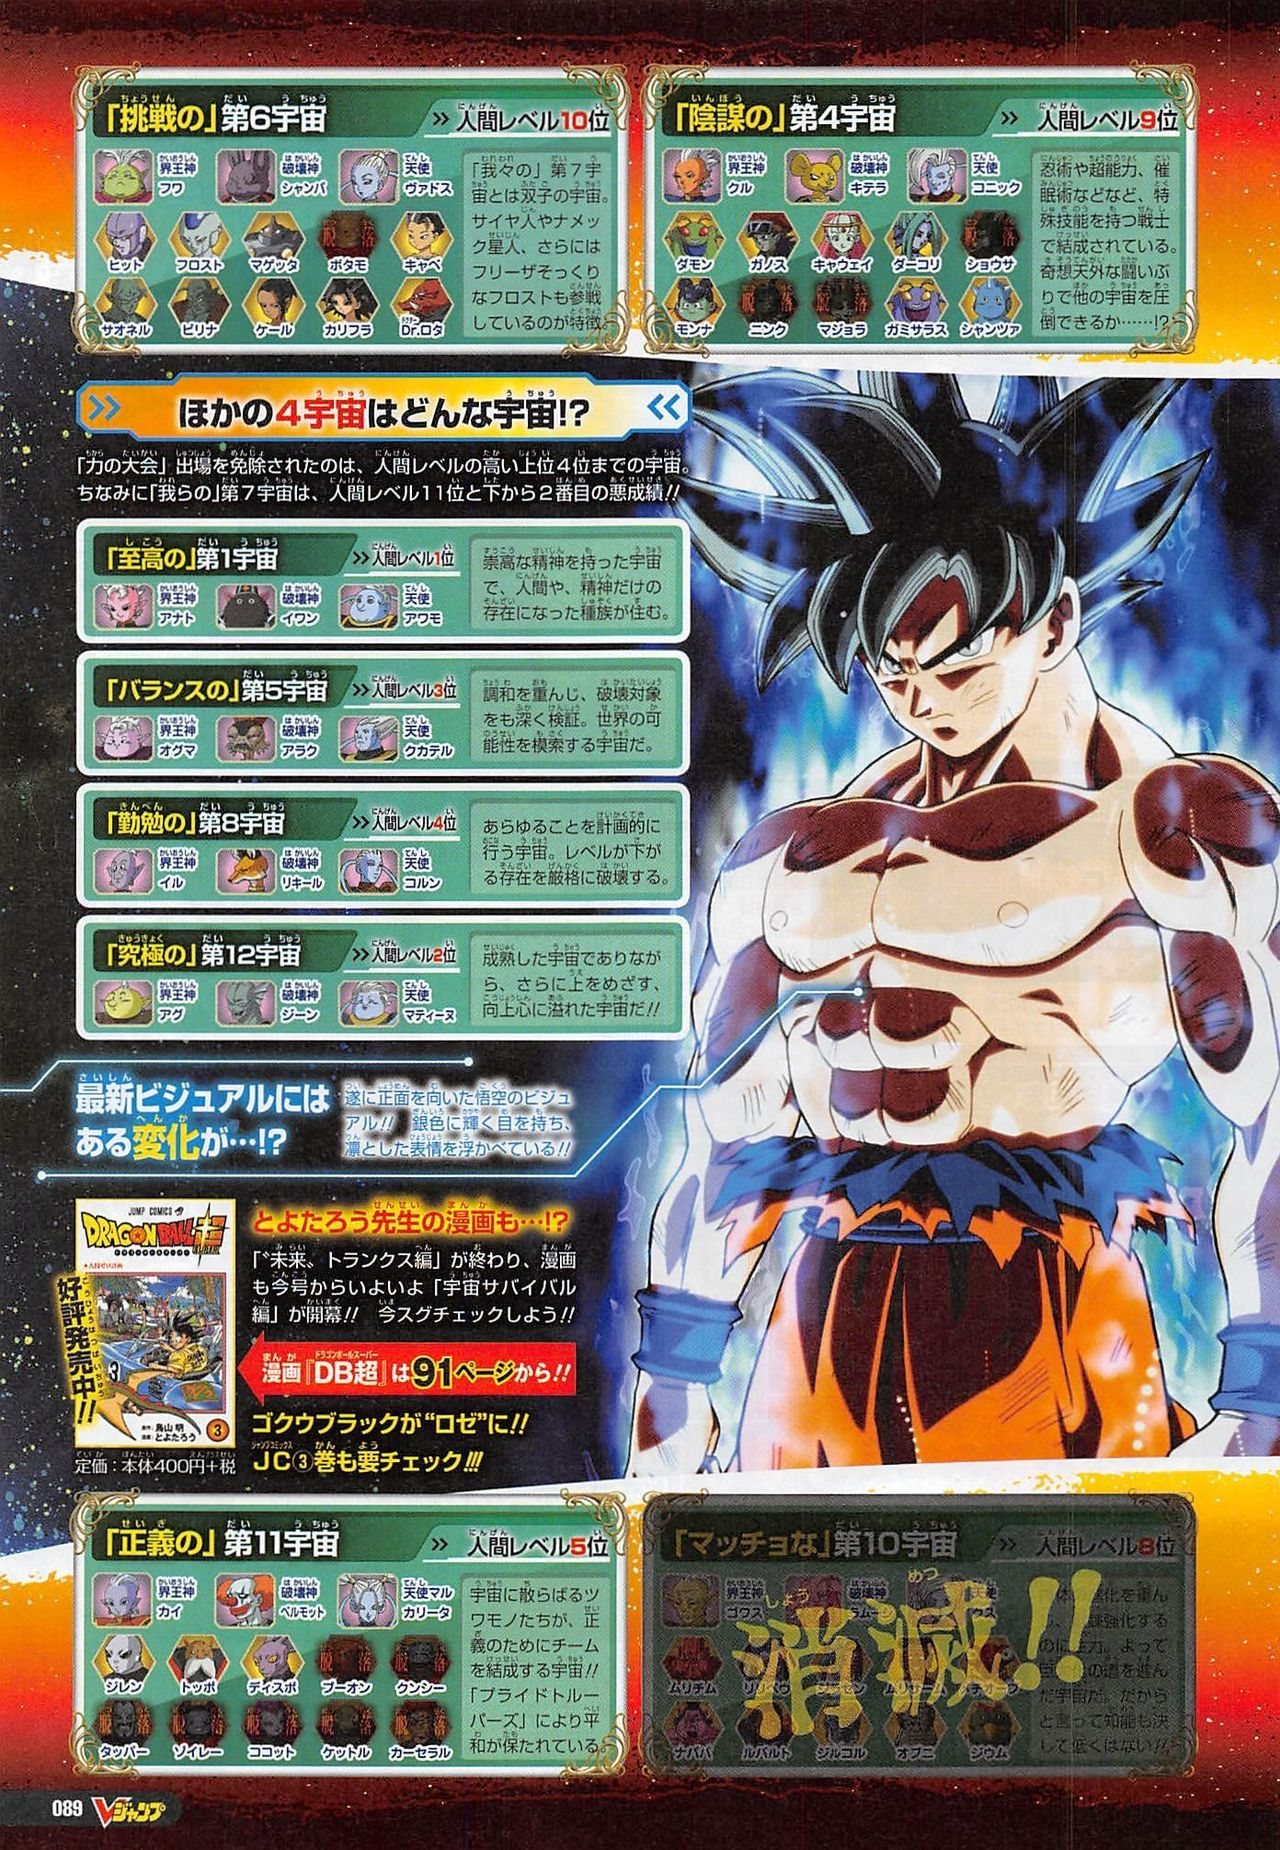 Nueva Transformación Goku Dragon Ball Super